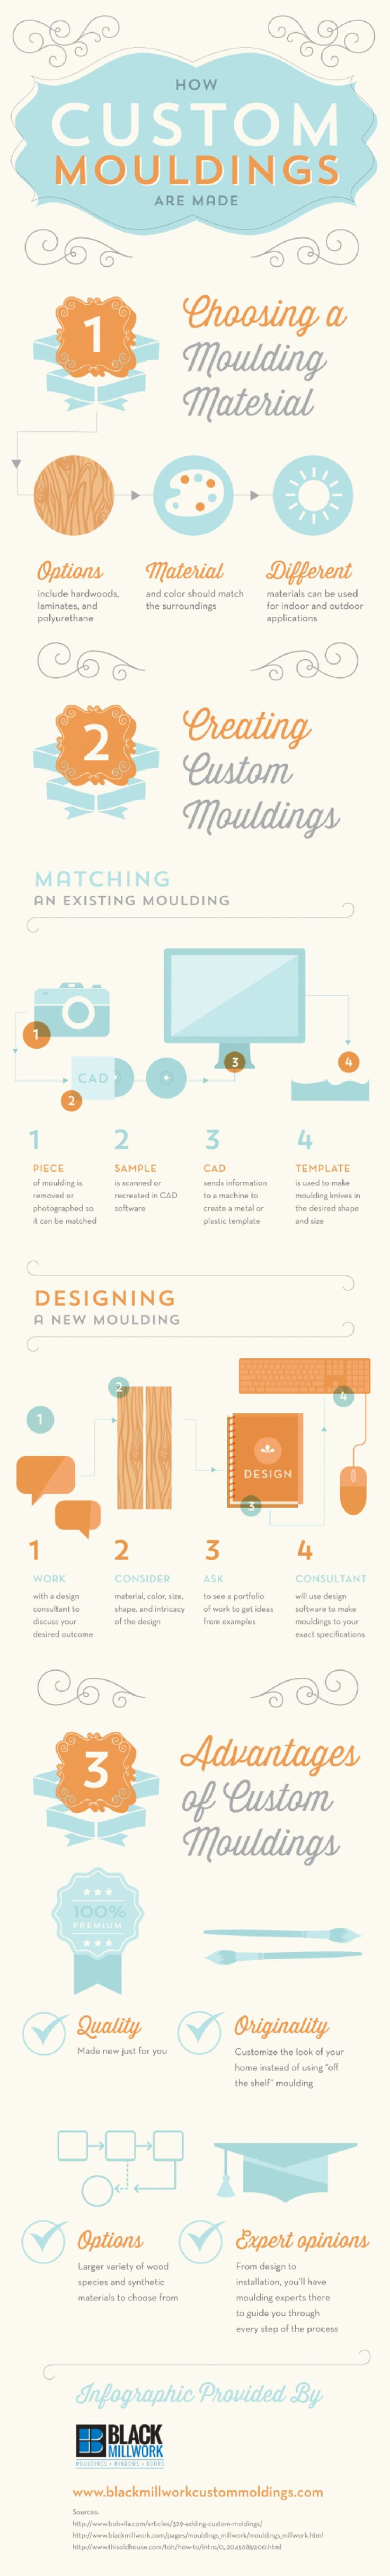 How Custom Mouldings Are Made Infographic. www.blackmillwork.com